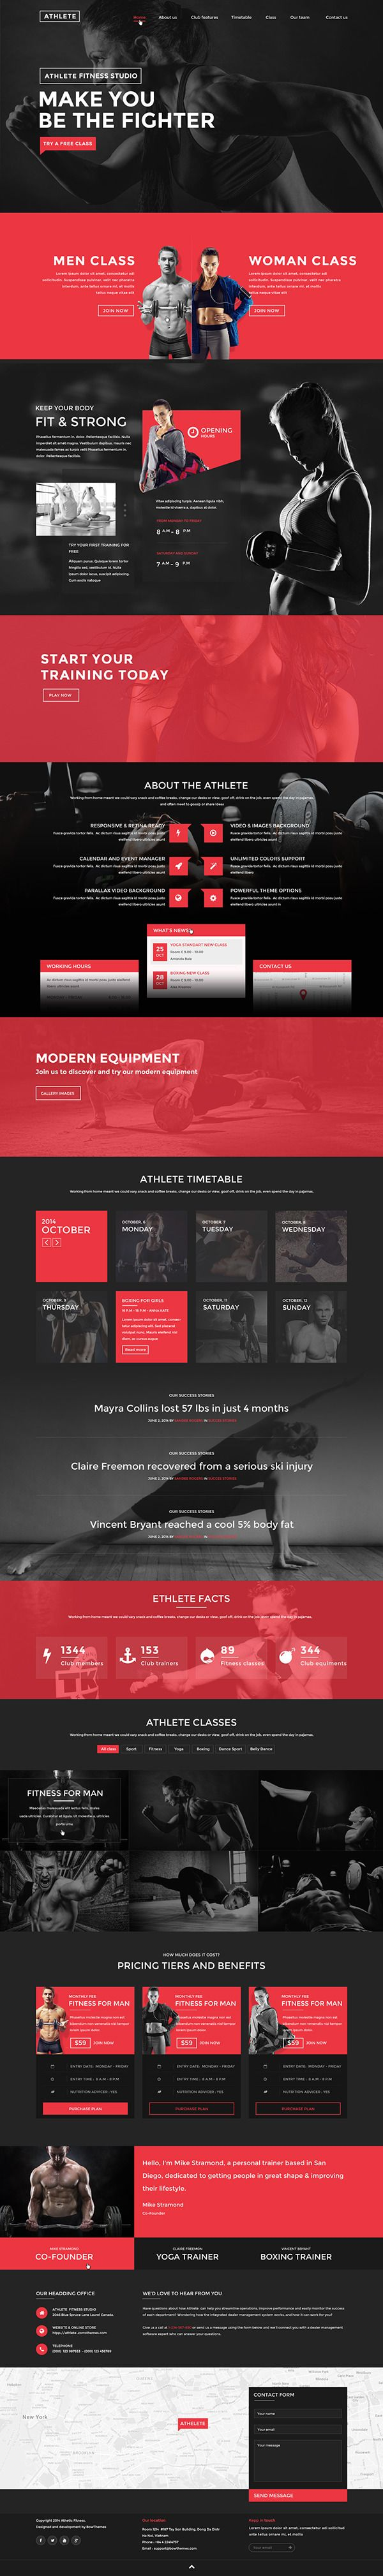 Athlete - Fitness and Sport Template on Behance